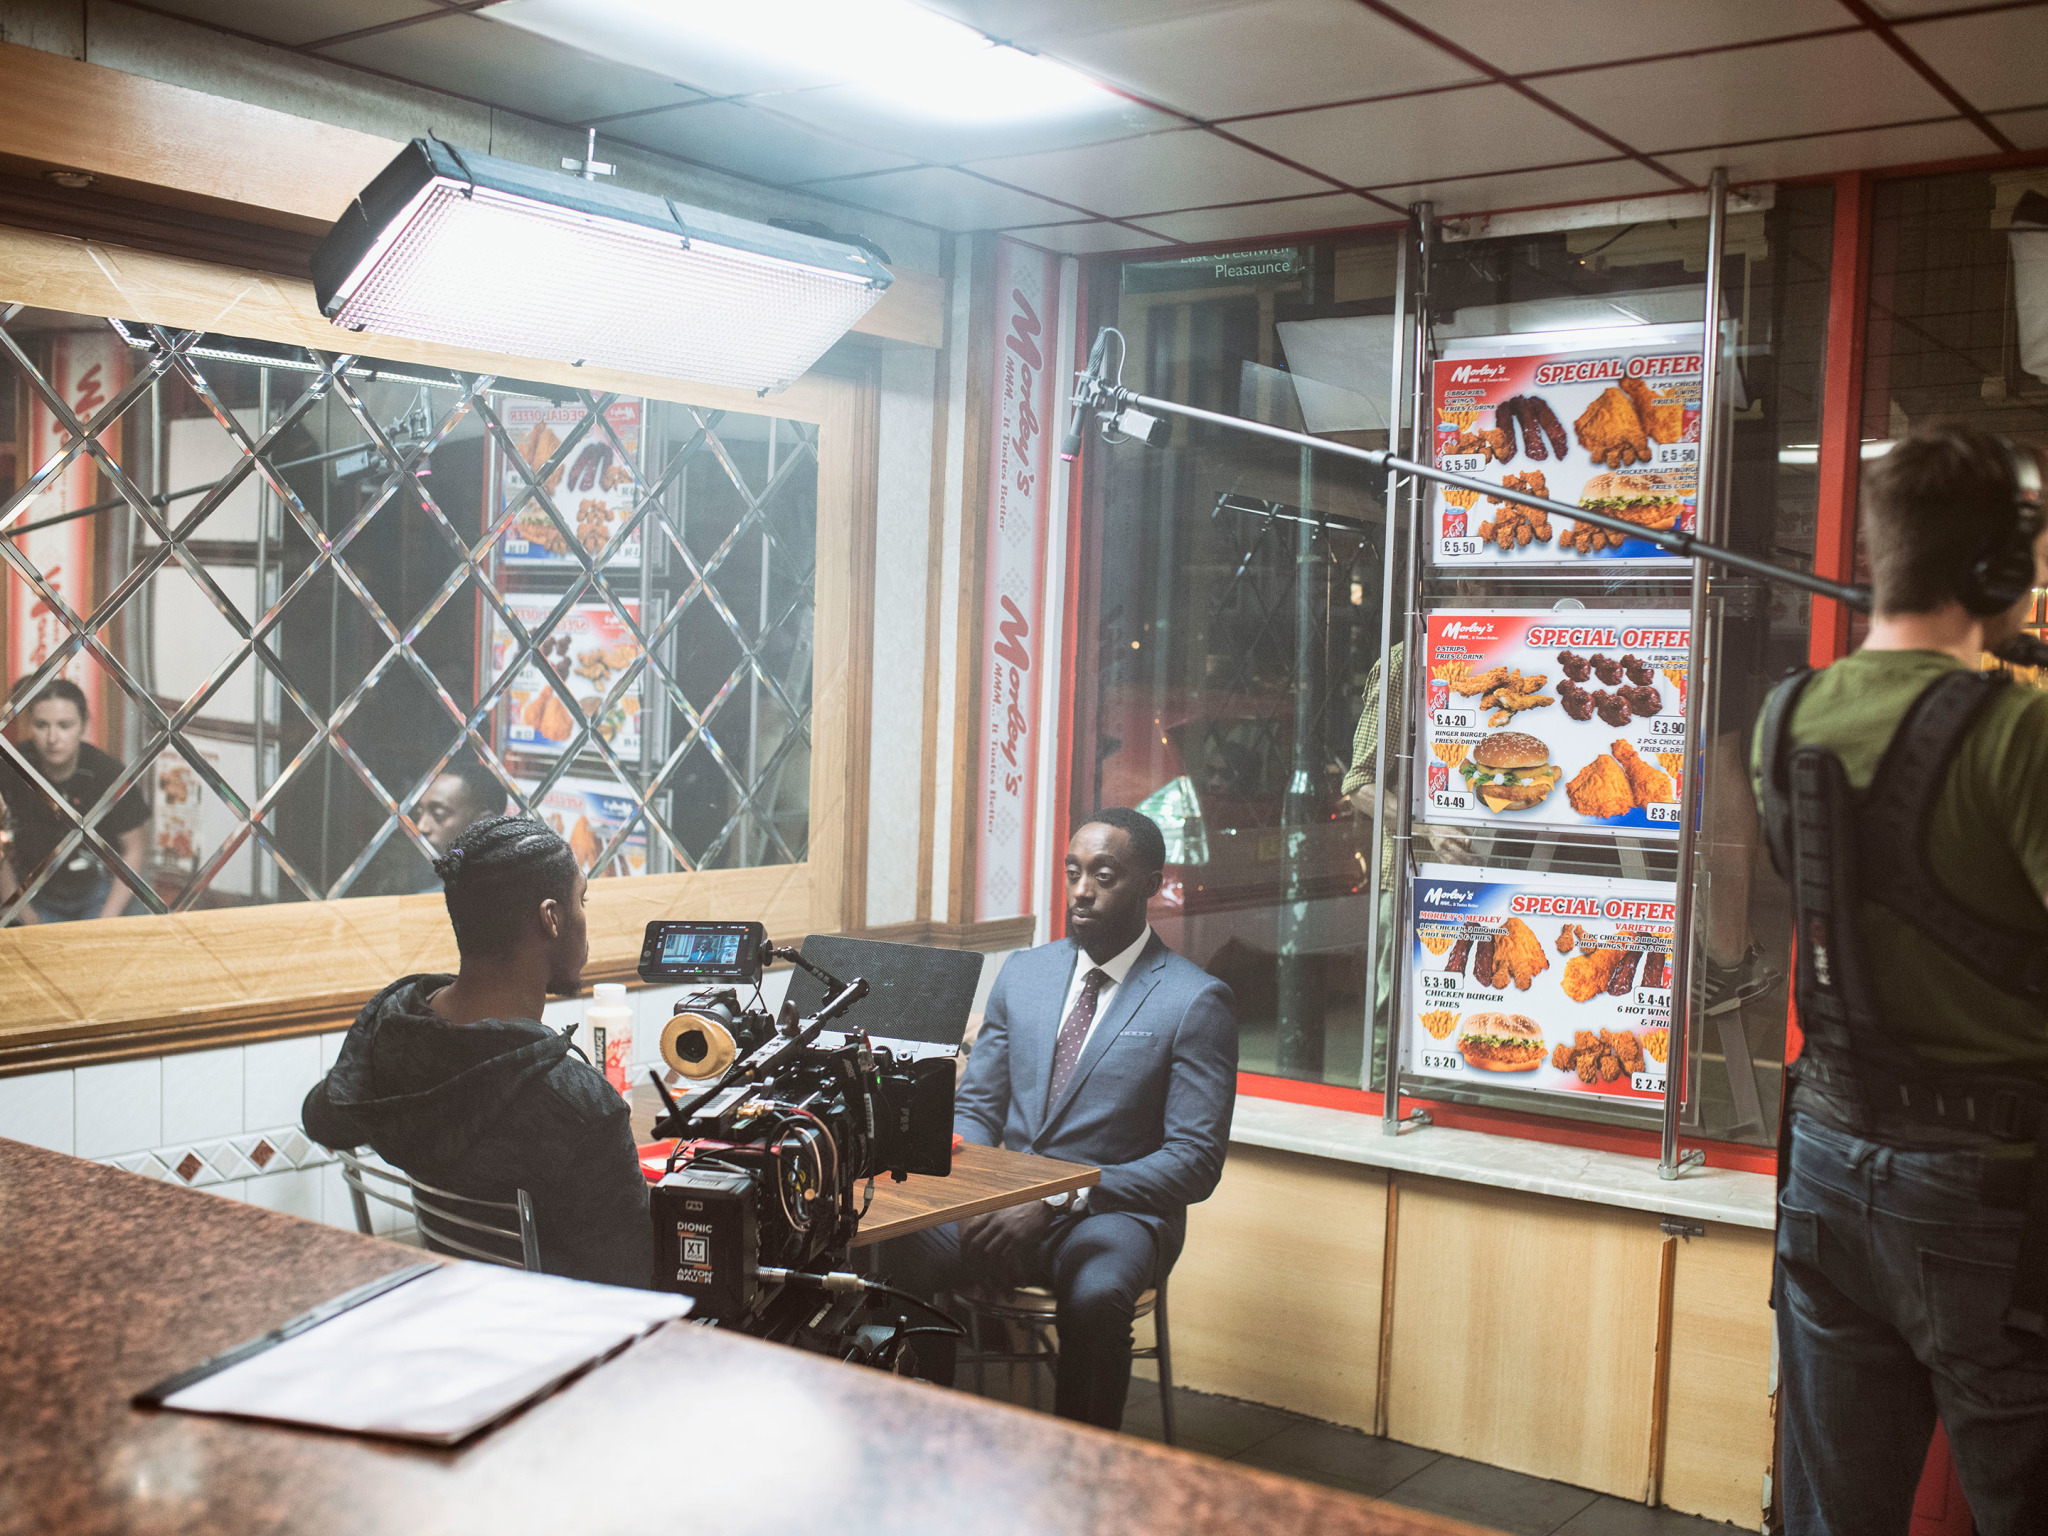 Two men sitting at a table in a chicken shop film set.